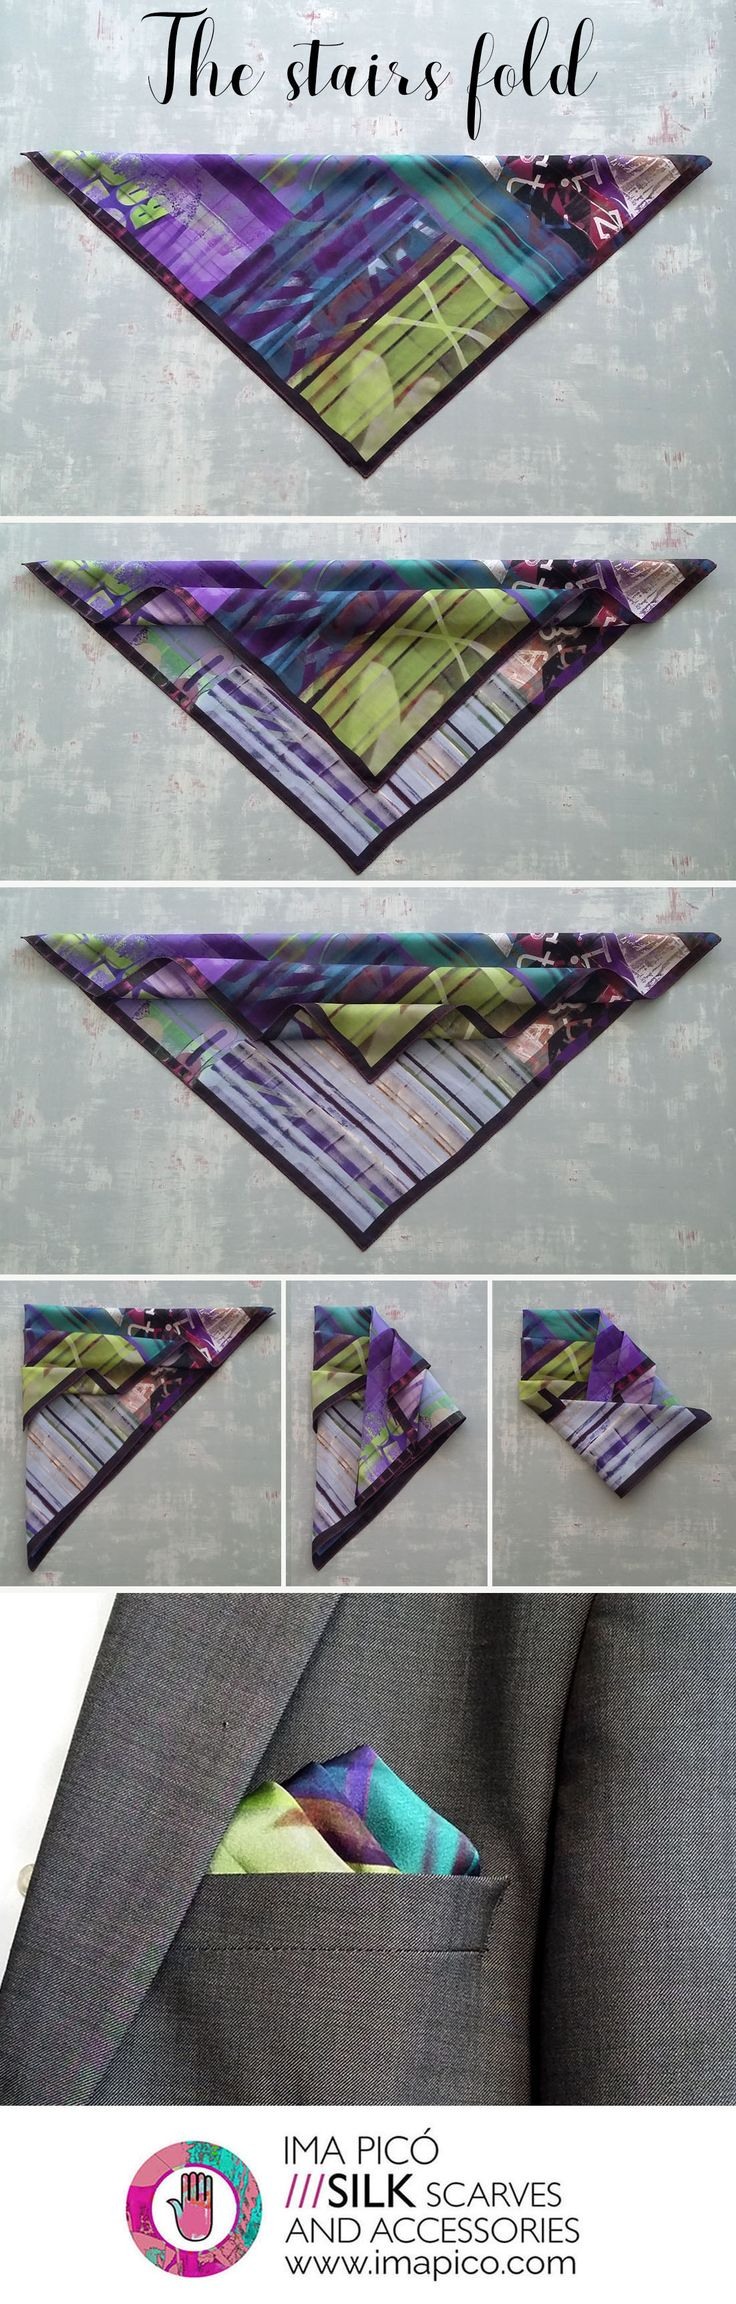 How to fold a pocket square The stairs fold. Pocket square shop.